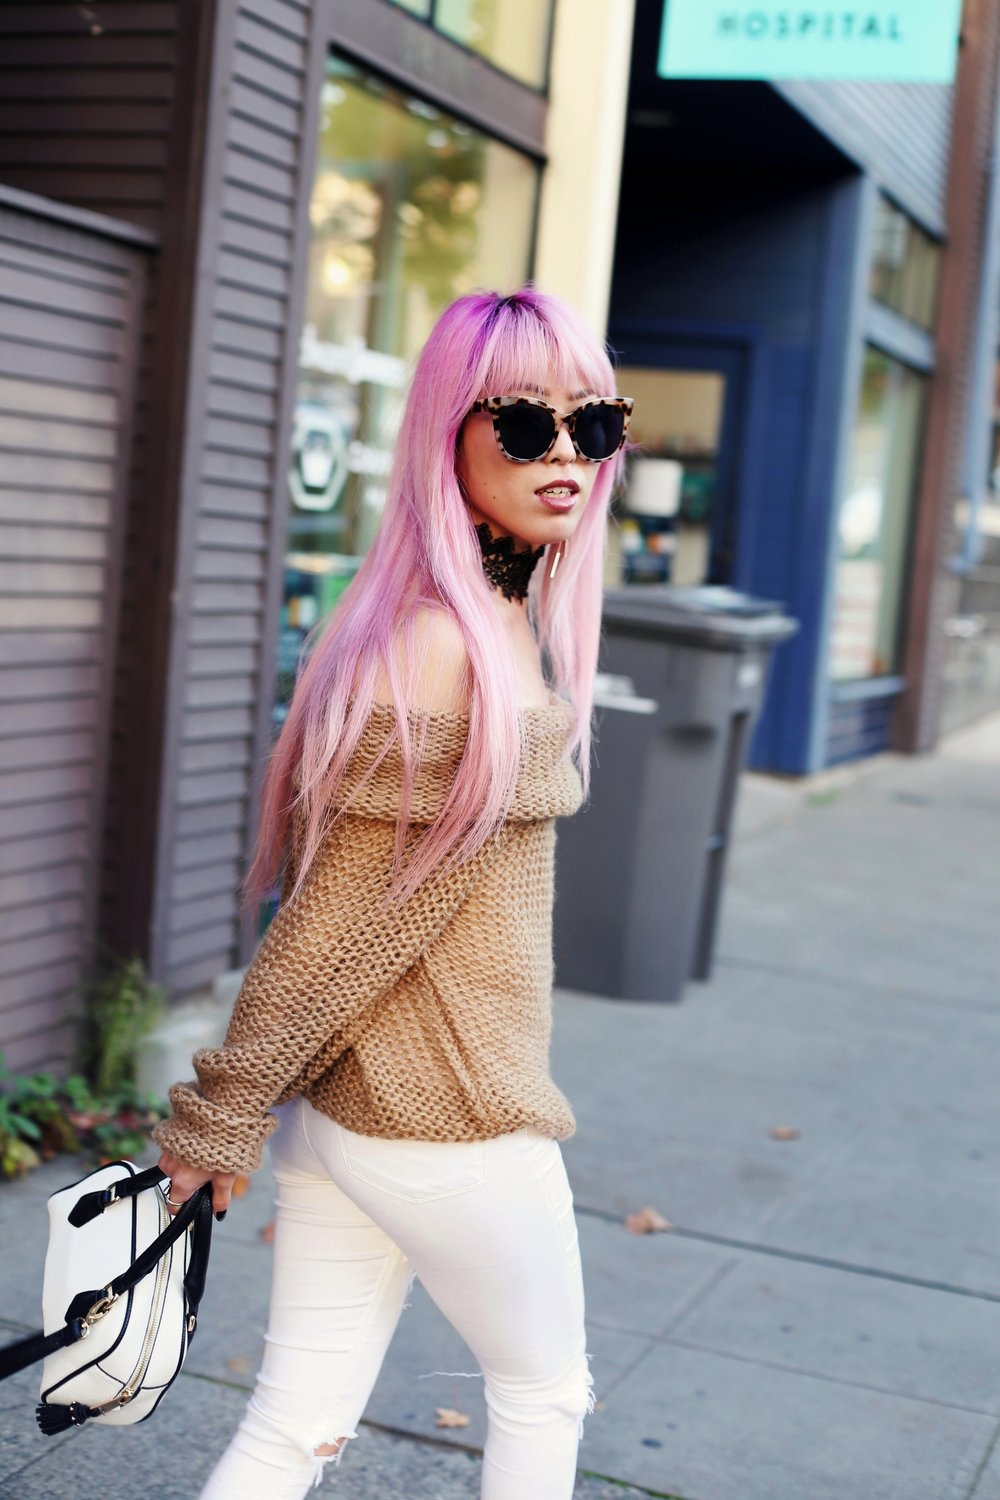 Urban Outfitters Sunglasses_Camel Off The Shoulder Sweater_TOPSHOP white jeans_ZARA Bag_ASOS Snake Skin Heels_Shop Dixi Lace Choker_Aika's Love Closet_Seattle Fashion Blogger_Japanese_Pink Hair_Colored Hair 3